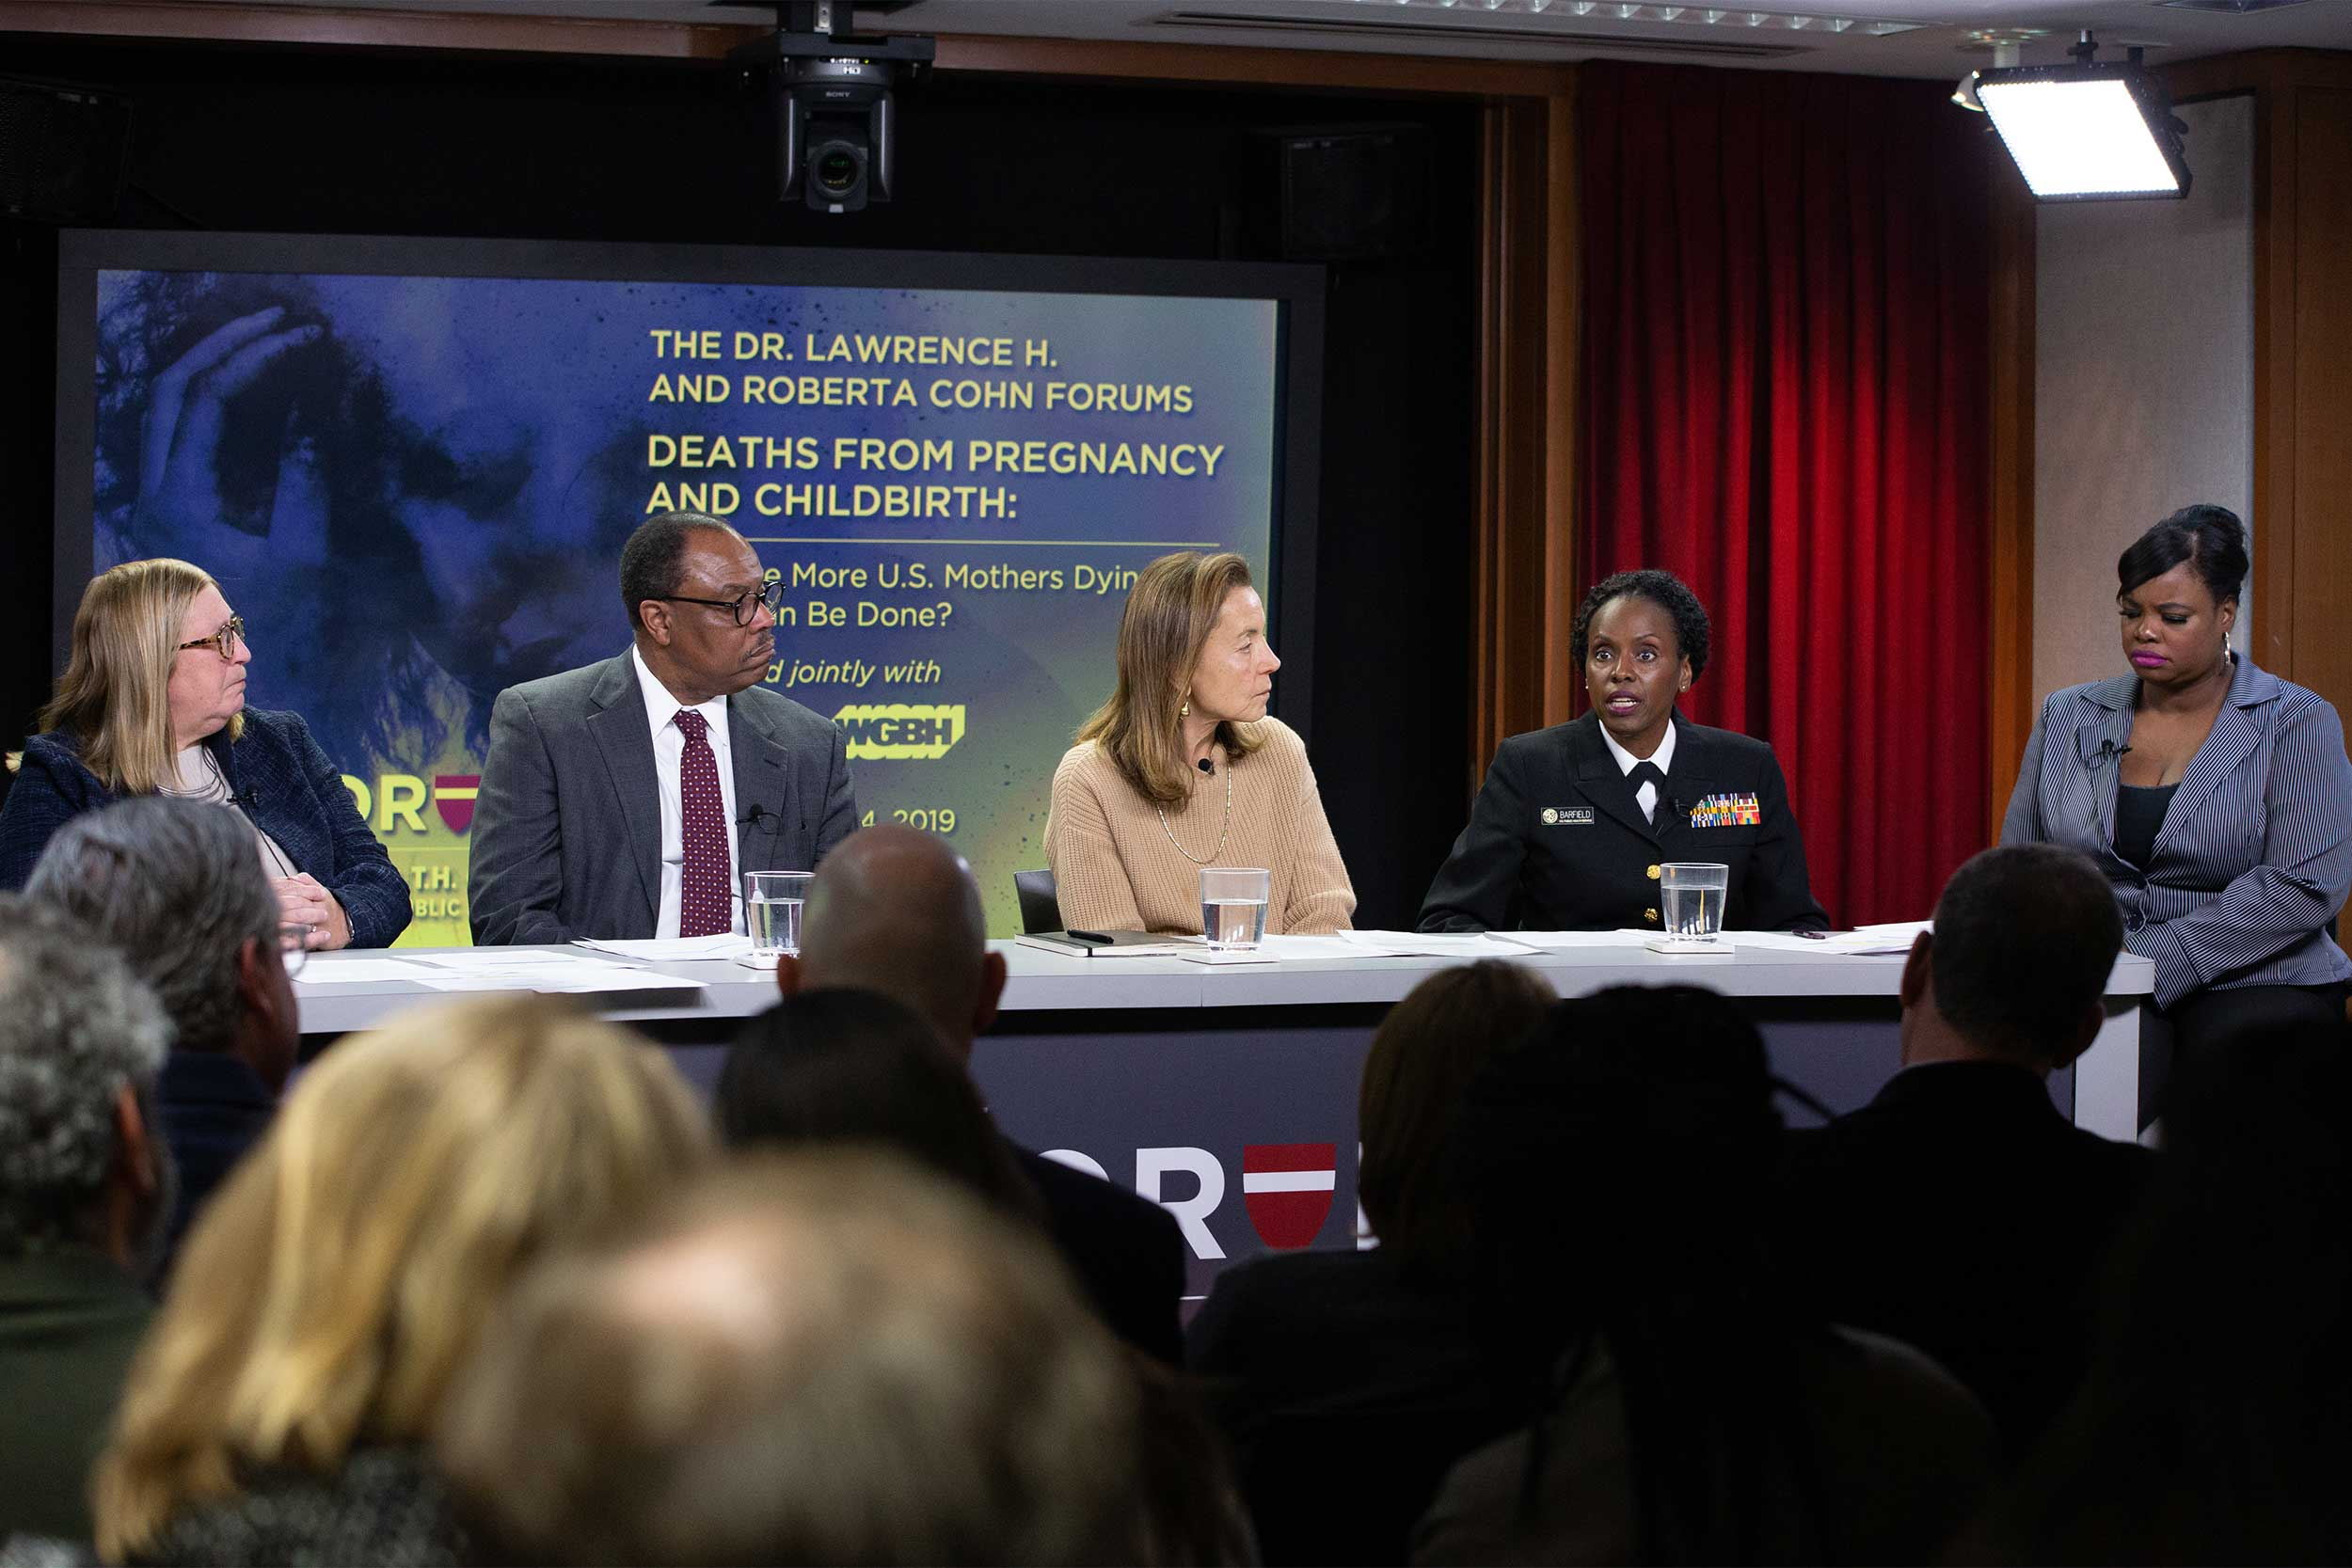 A panel convened to discuss the high maternal mortality rate in the U.S.